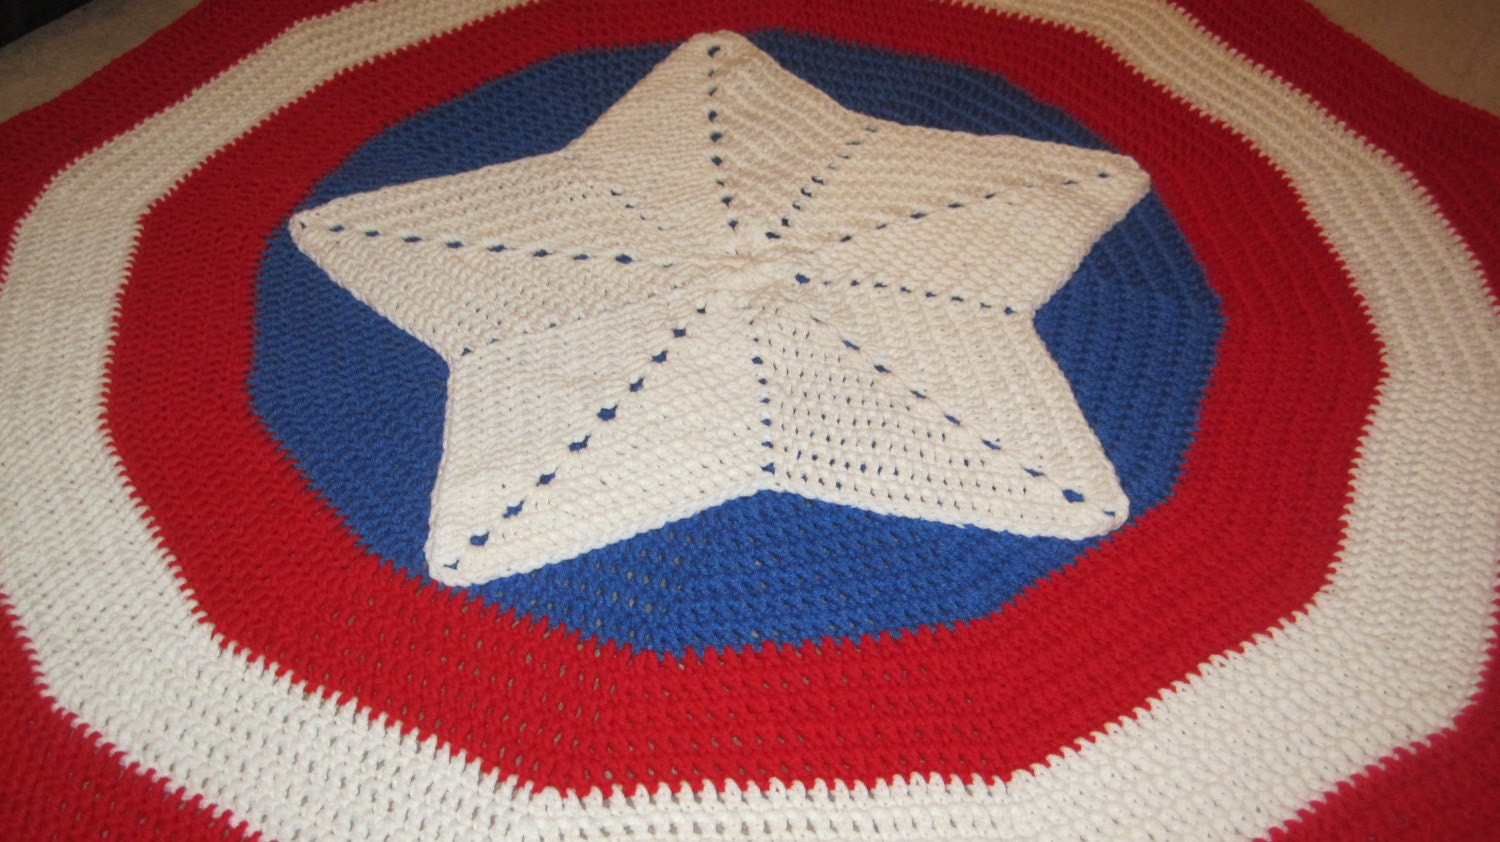 Shield captain america inspired shield round blanket zoom bankloansurffo Images